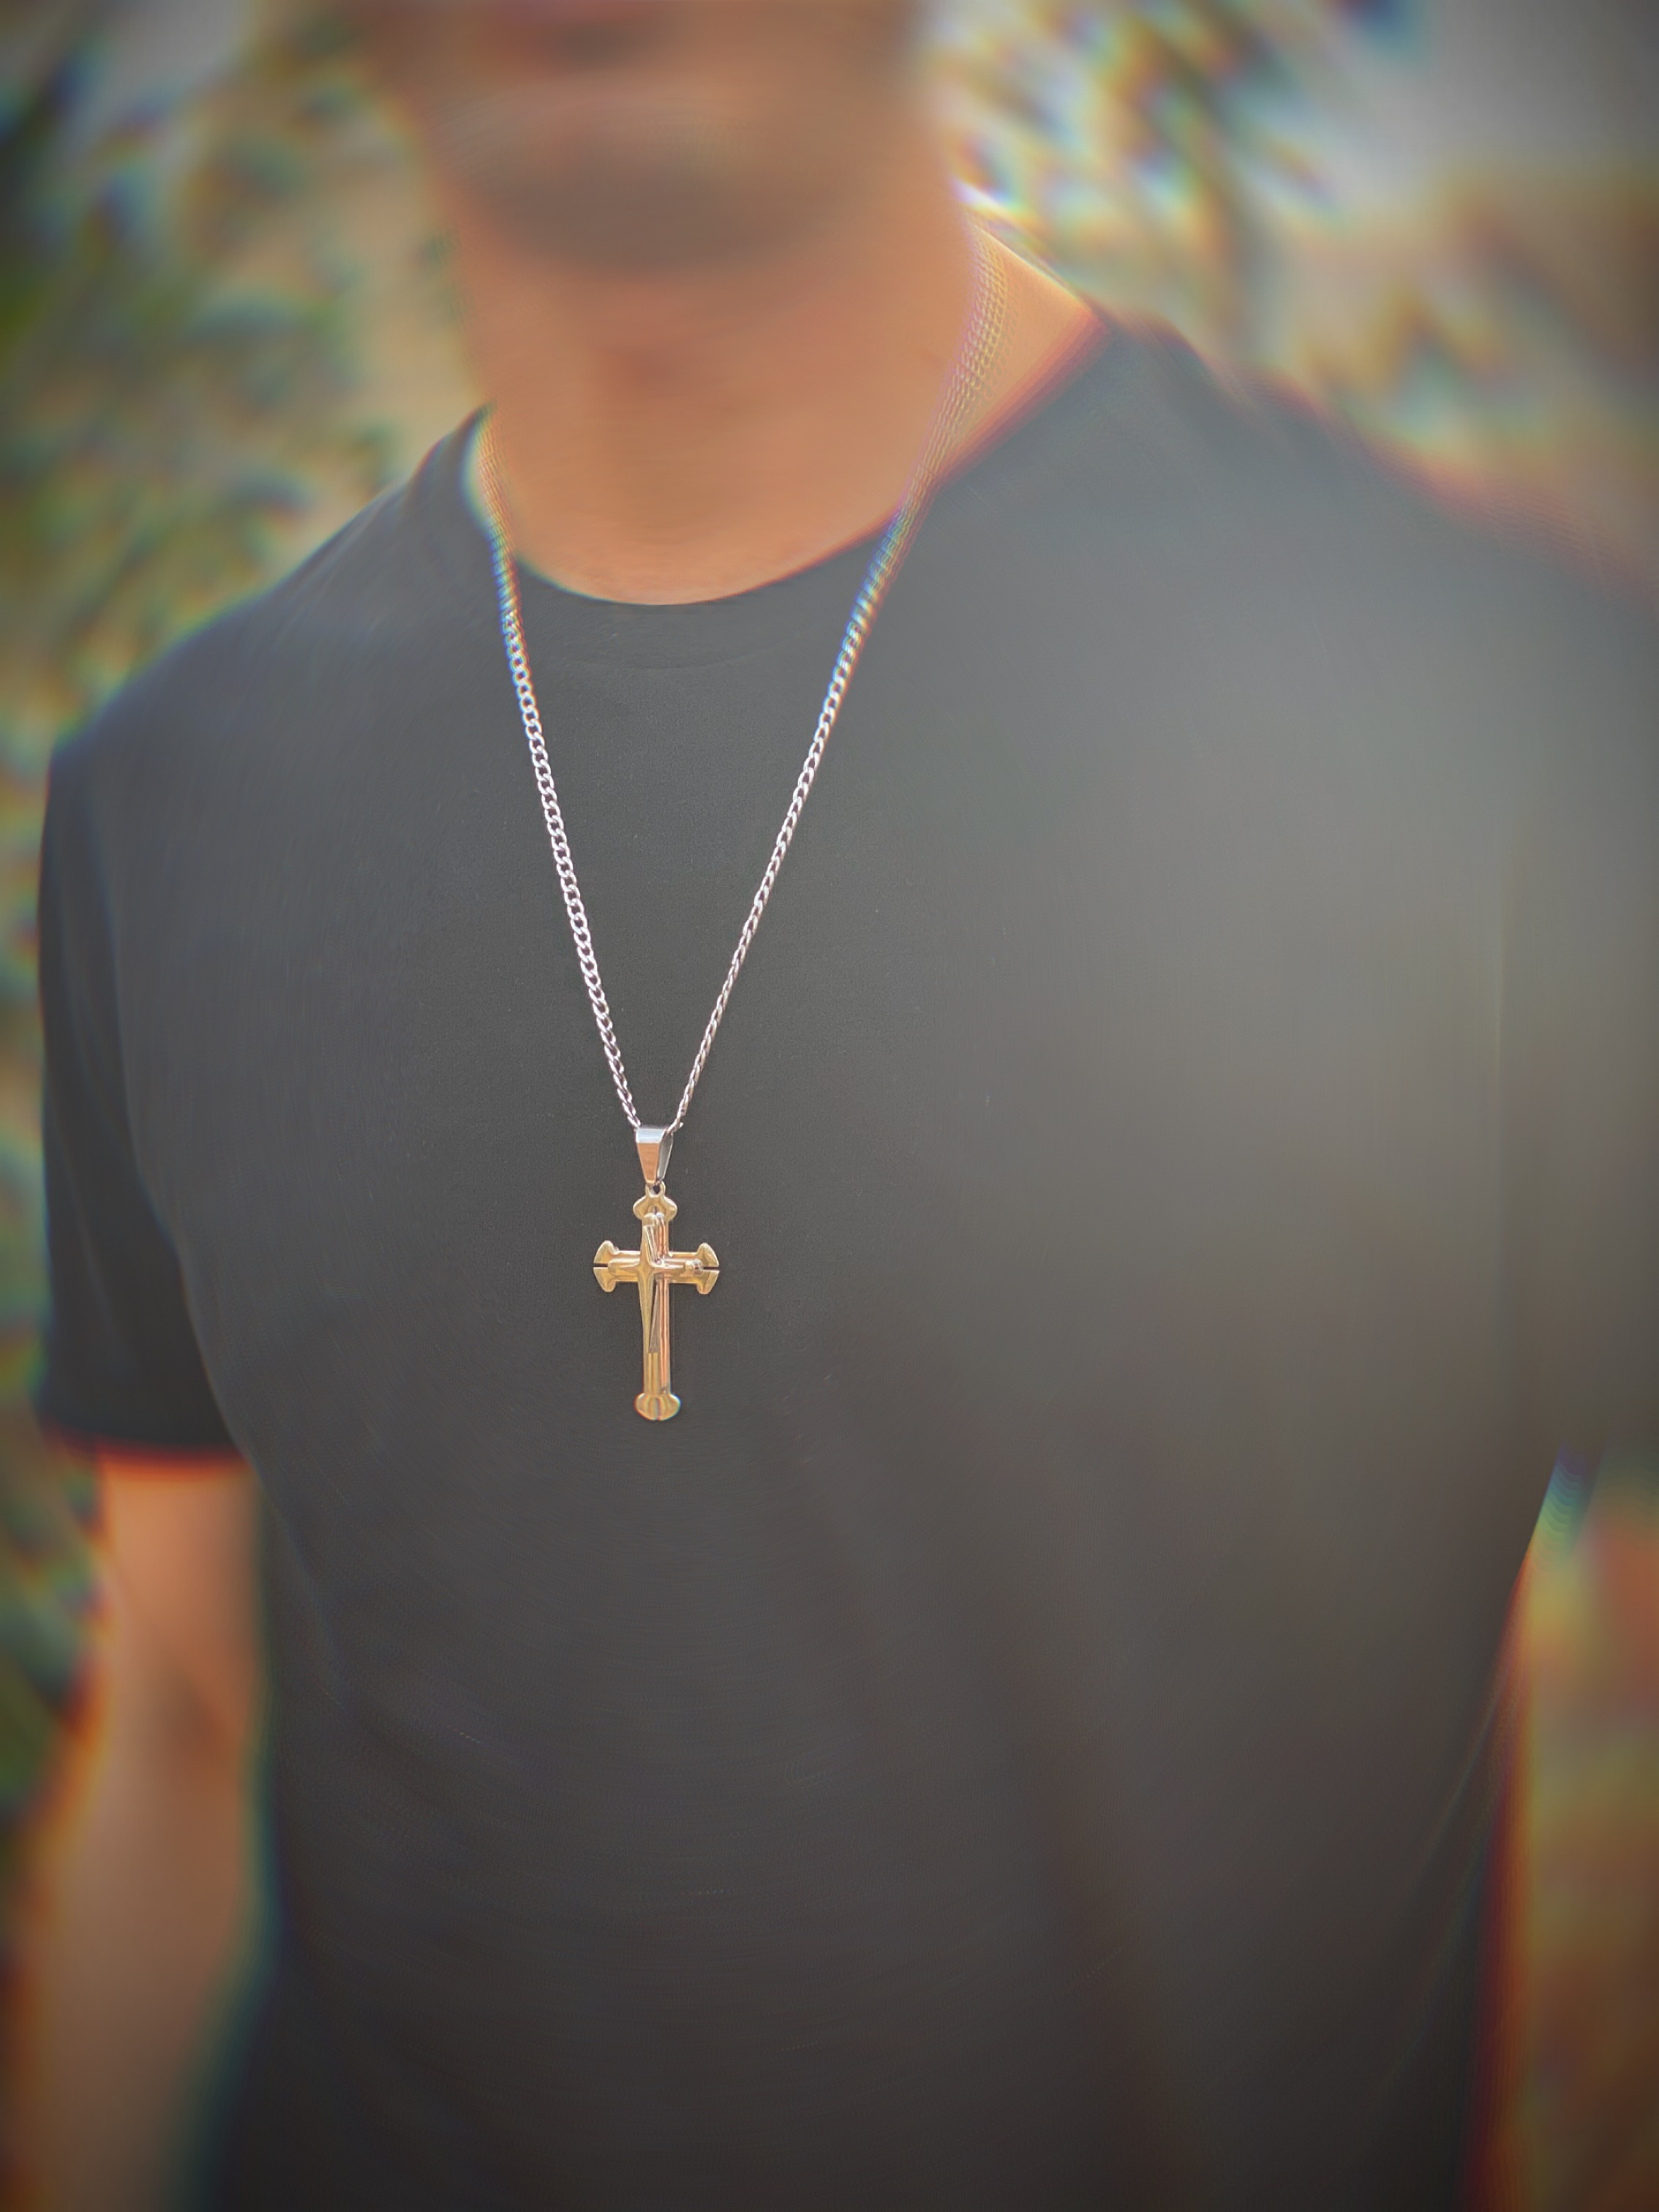 Christ Cross Pendant Necklace – Silver, Gold, Black – X©